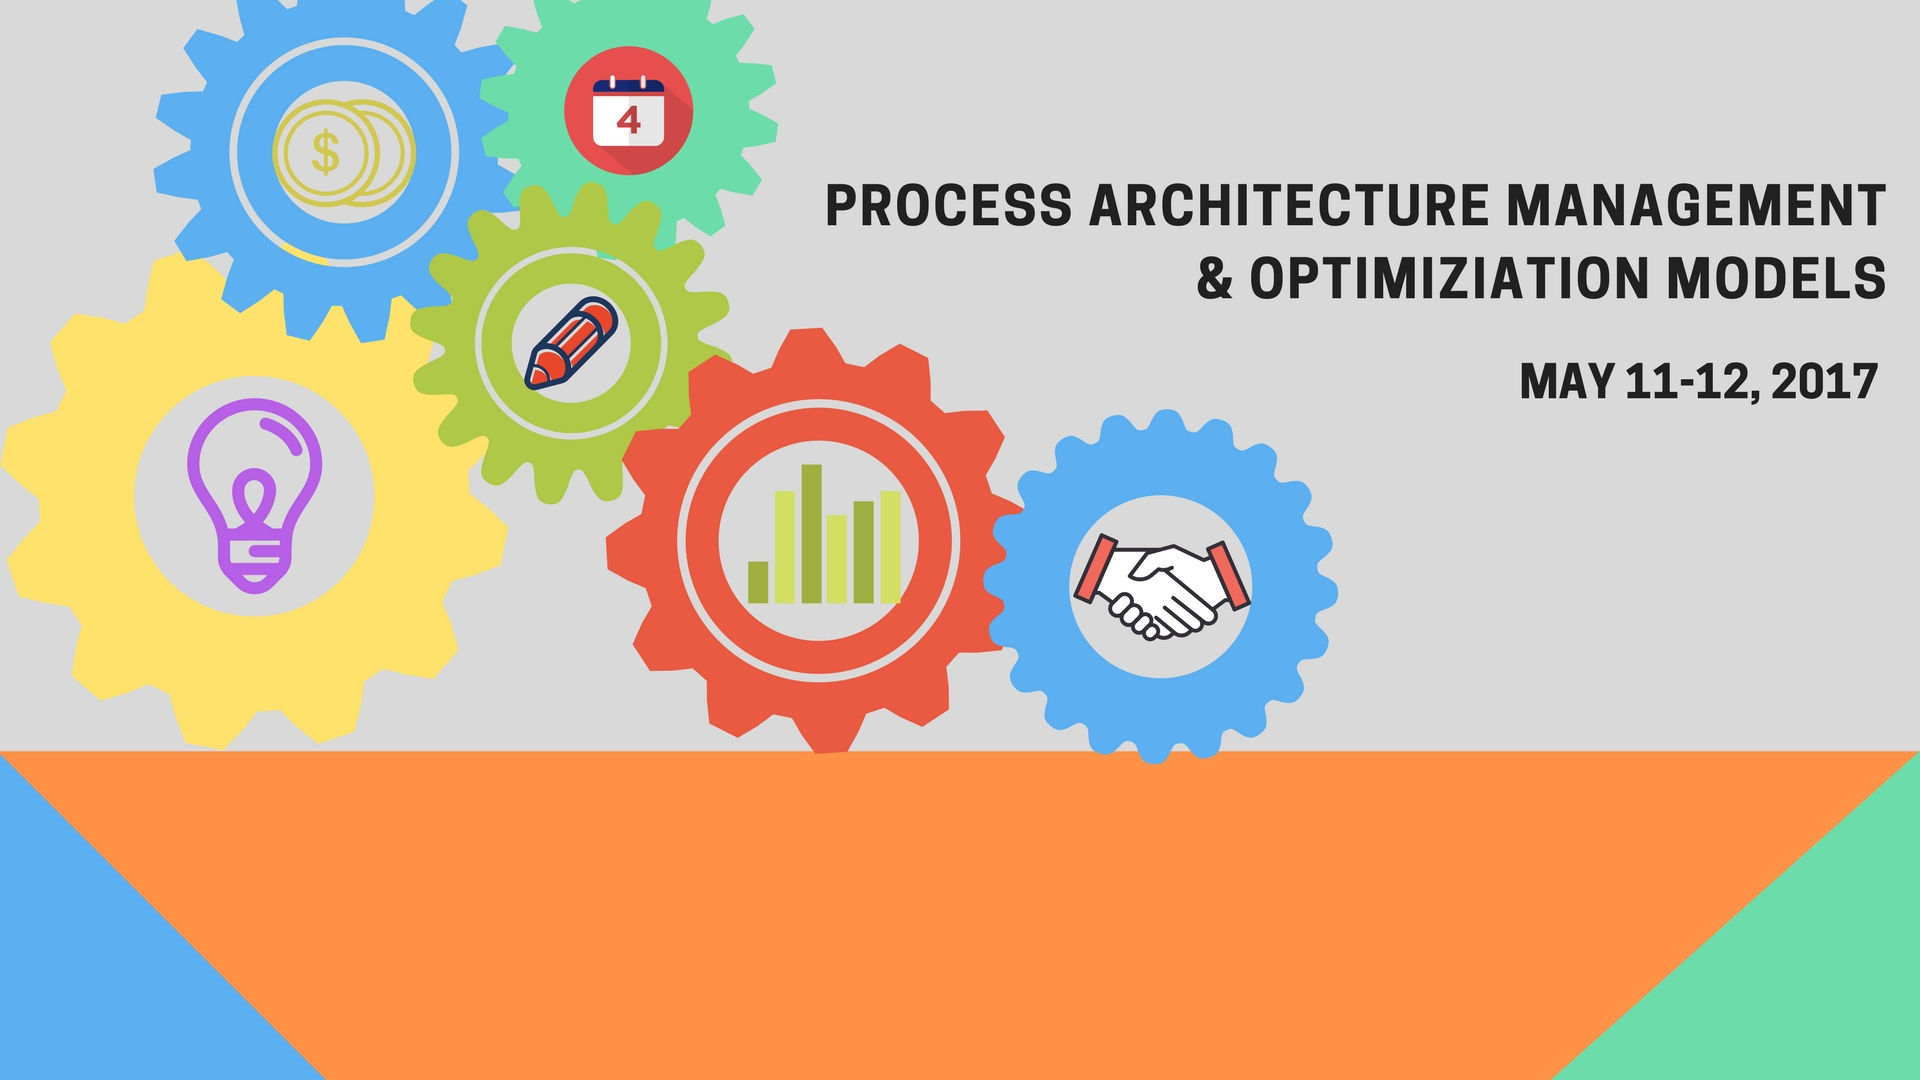 Process Architecture Management And Optimization Models